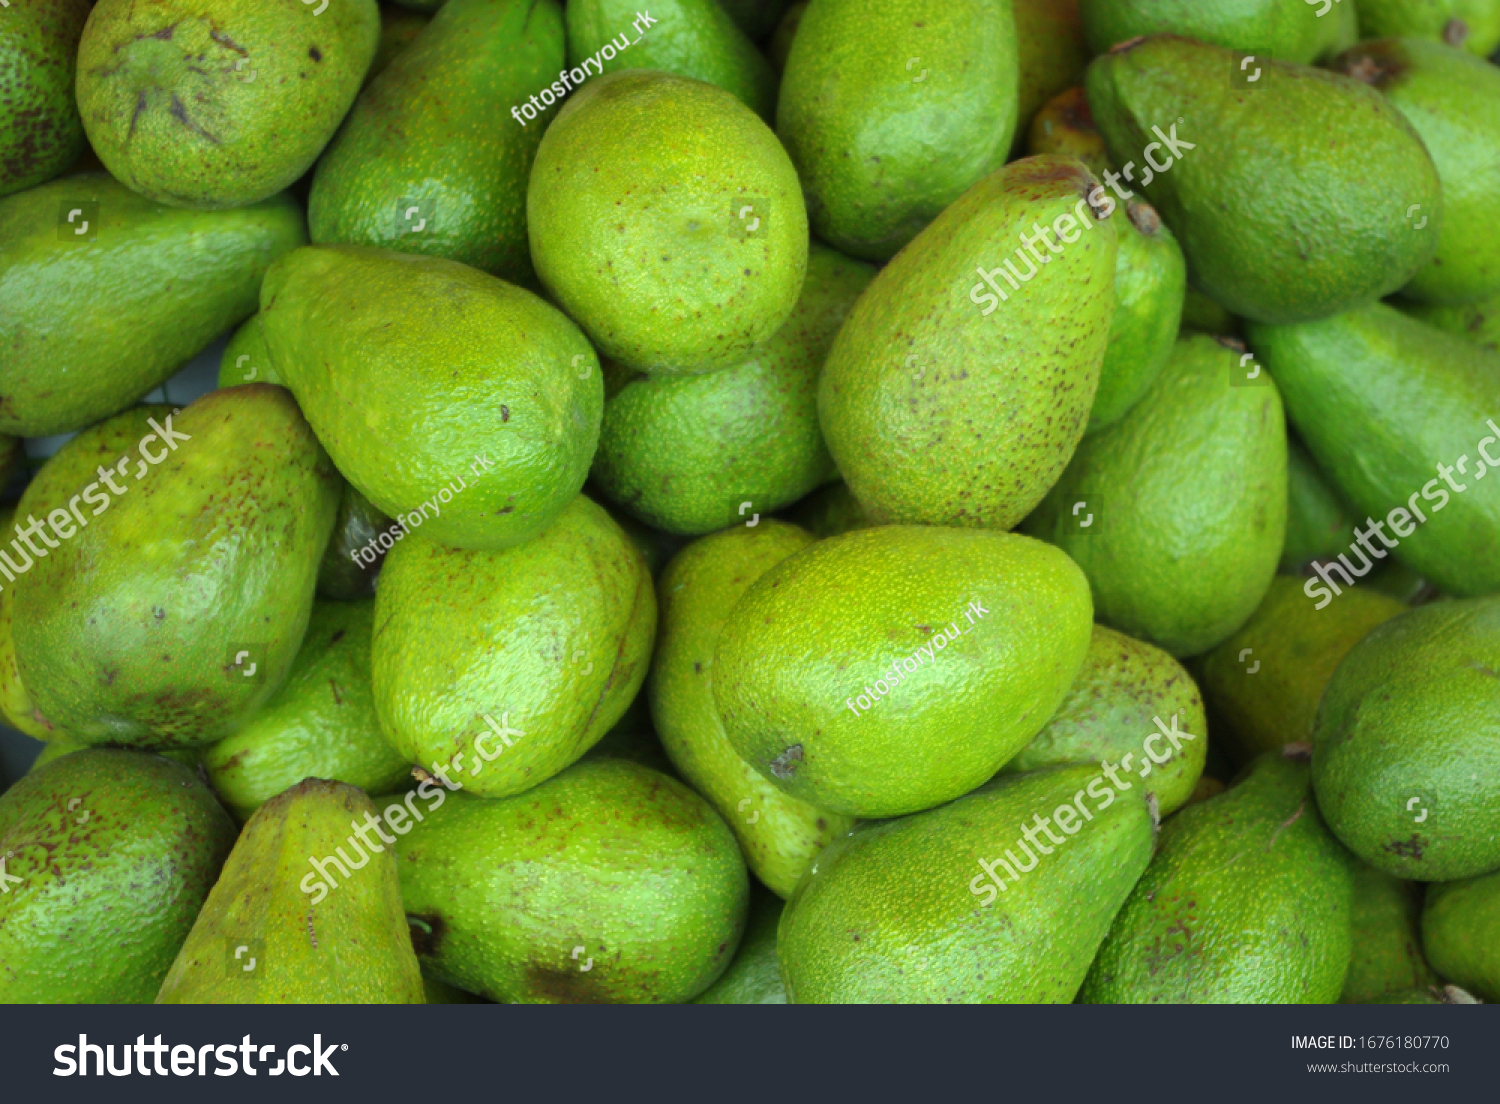 Lots of avocados in a big box